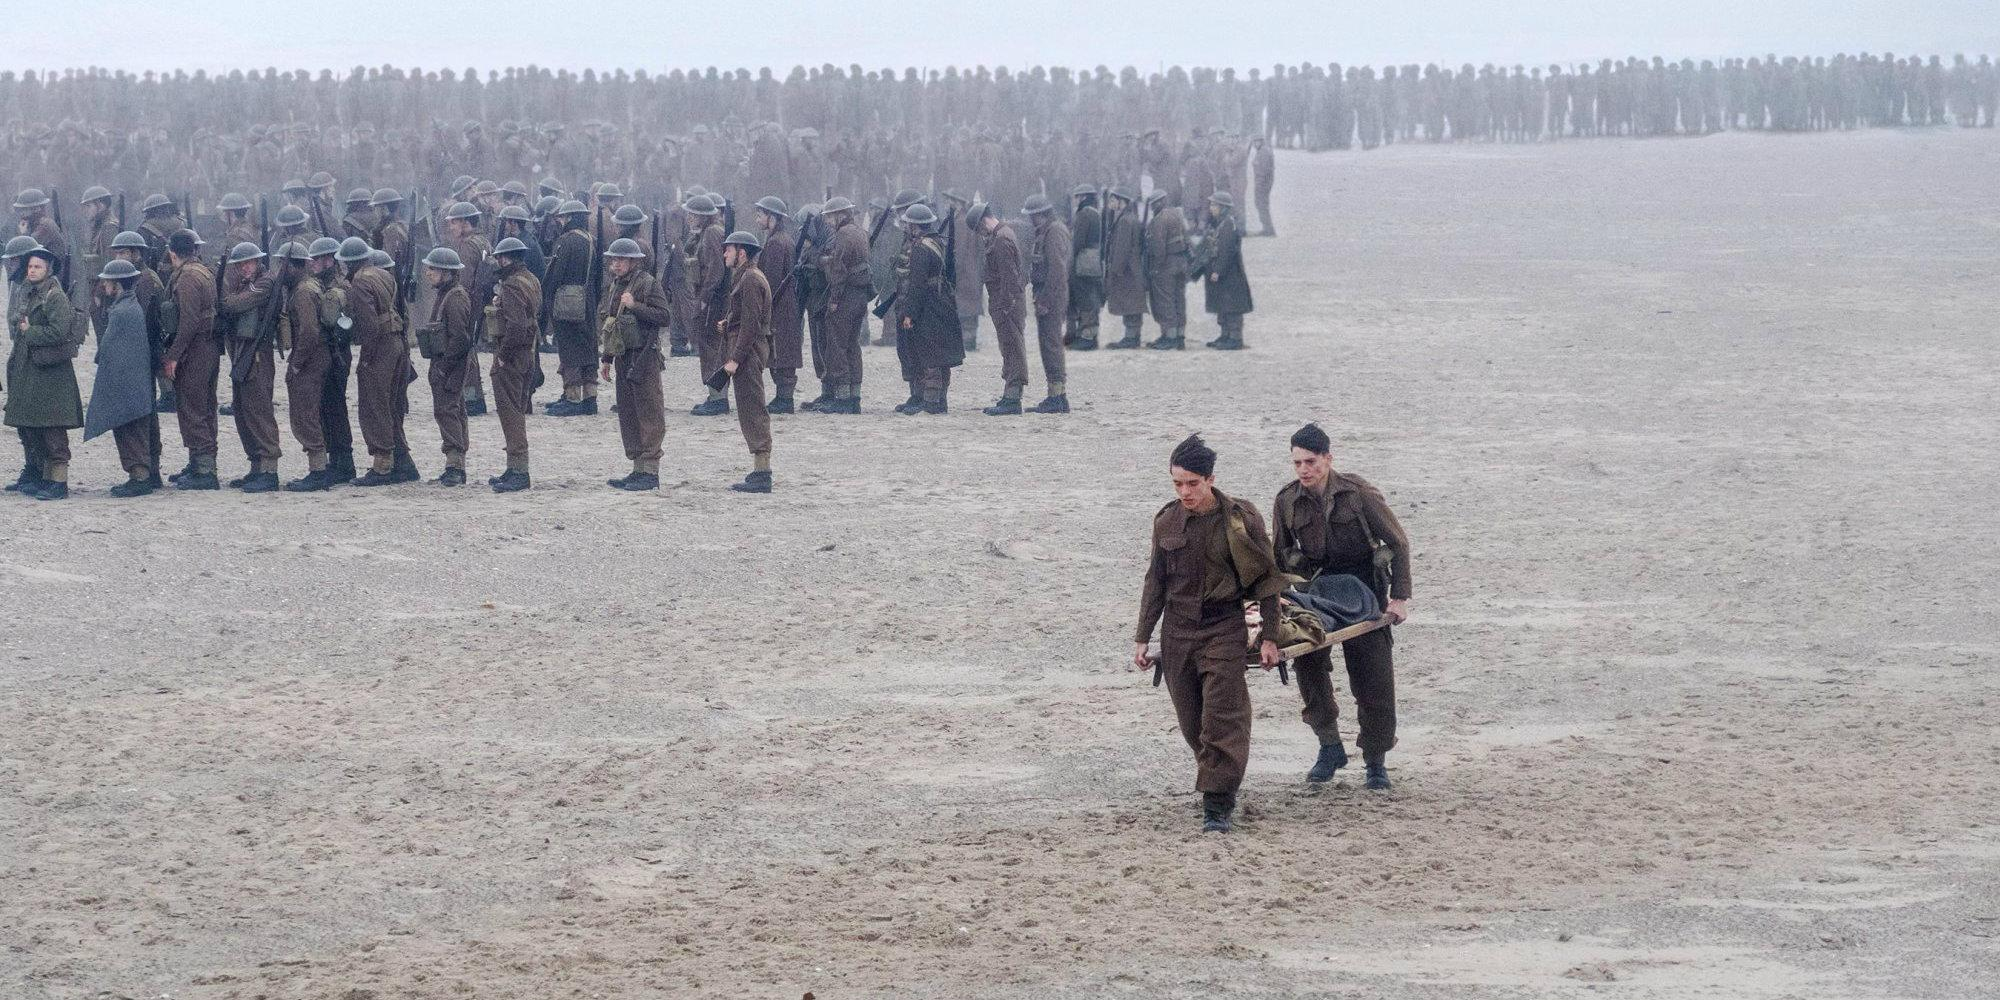 dunkirk reviews roundup what the critics are saying about christopher nolan 39 s latest movie. Black Bedroom Furniture Sets. Home Design Ideas